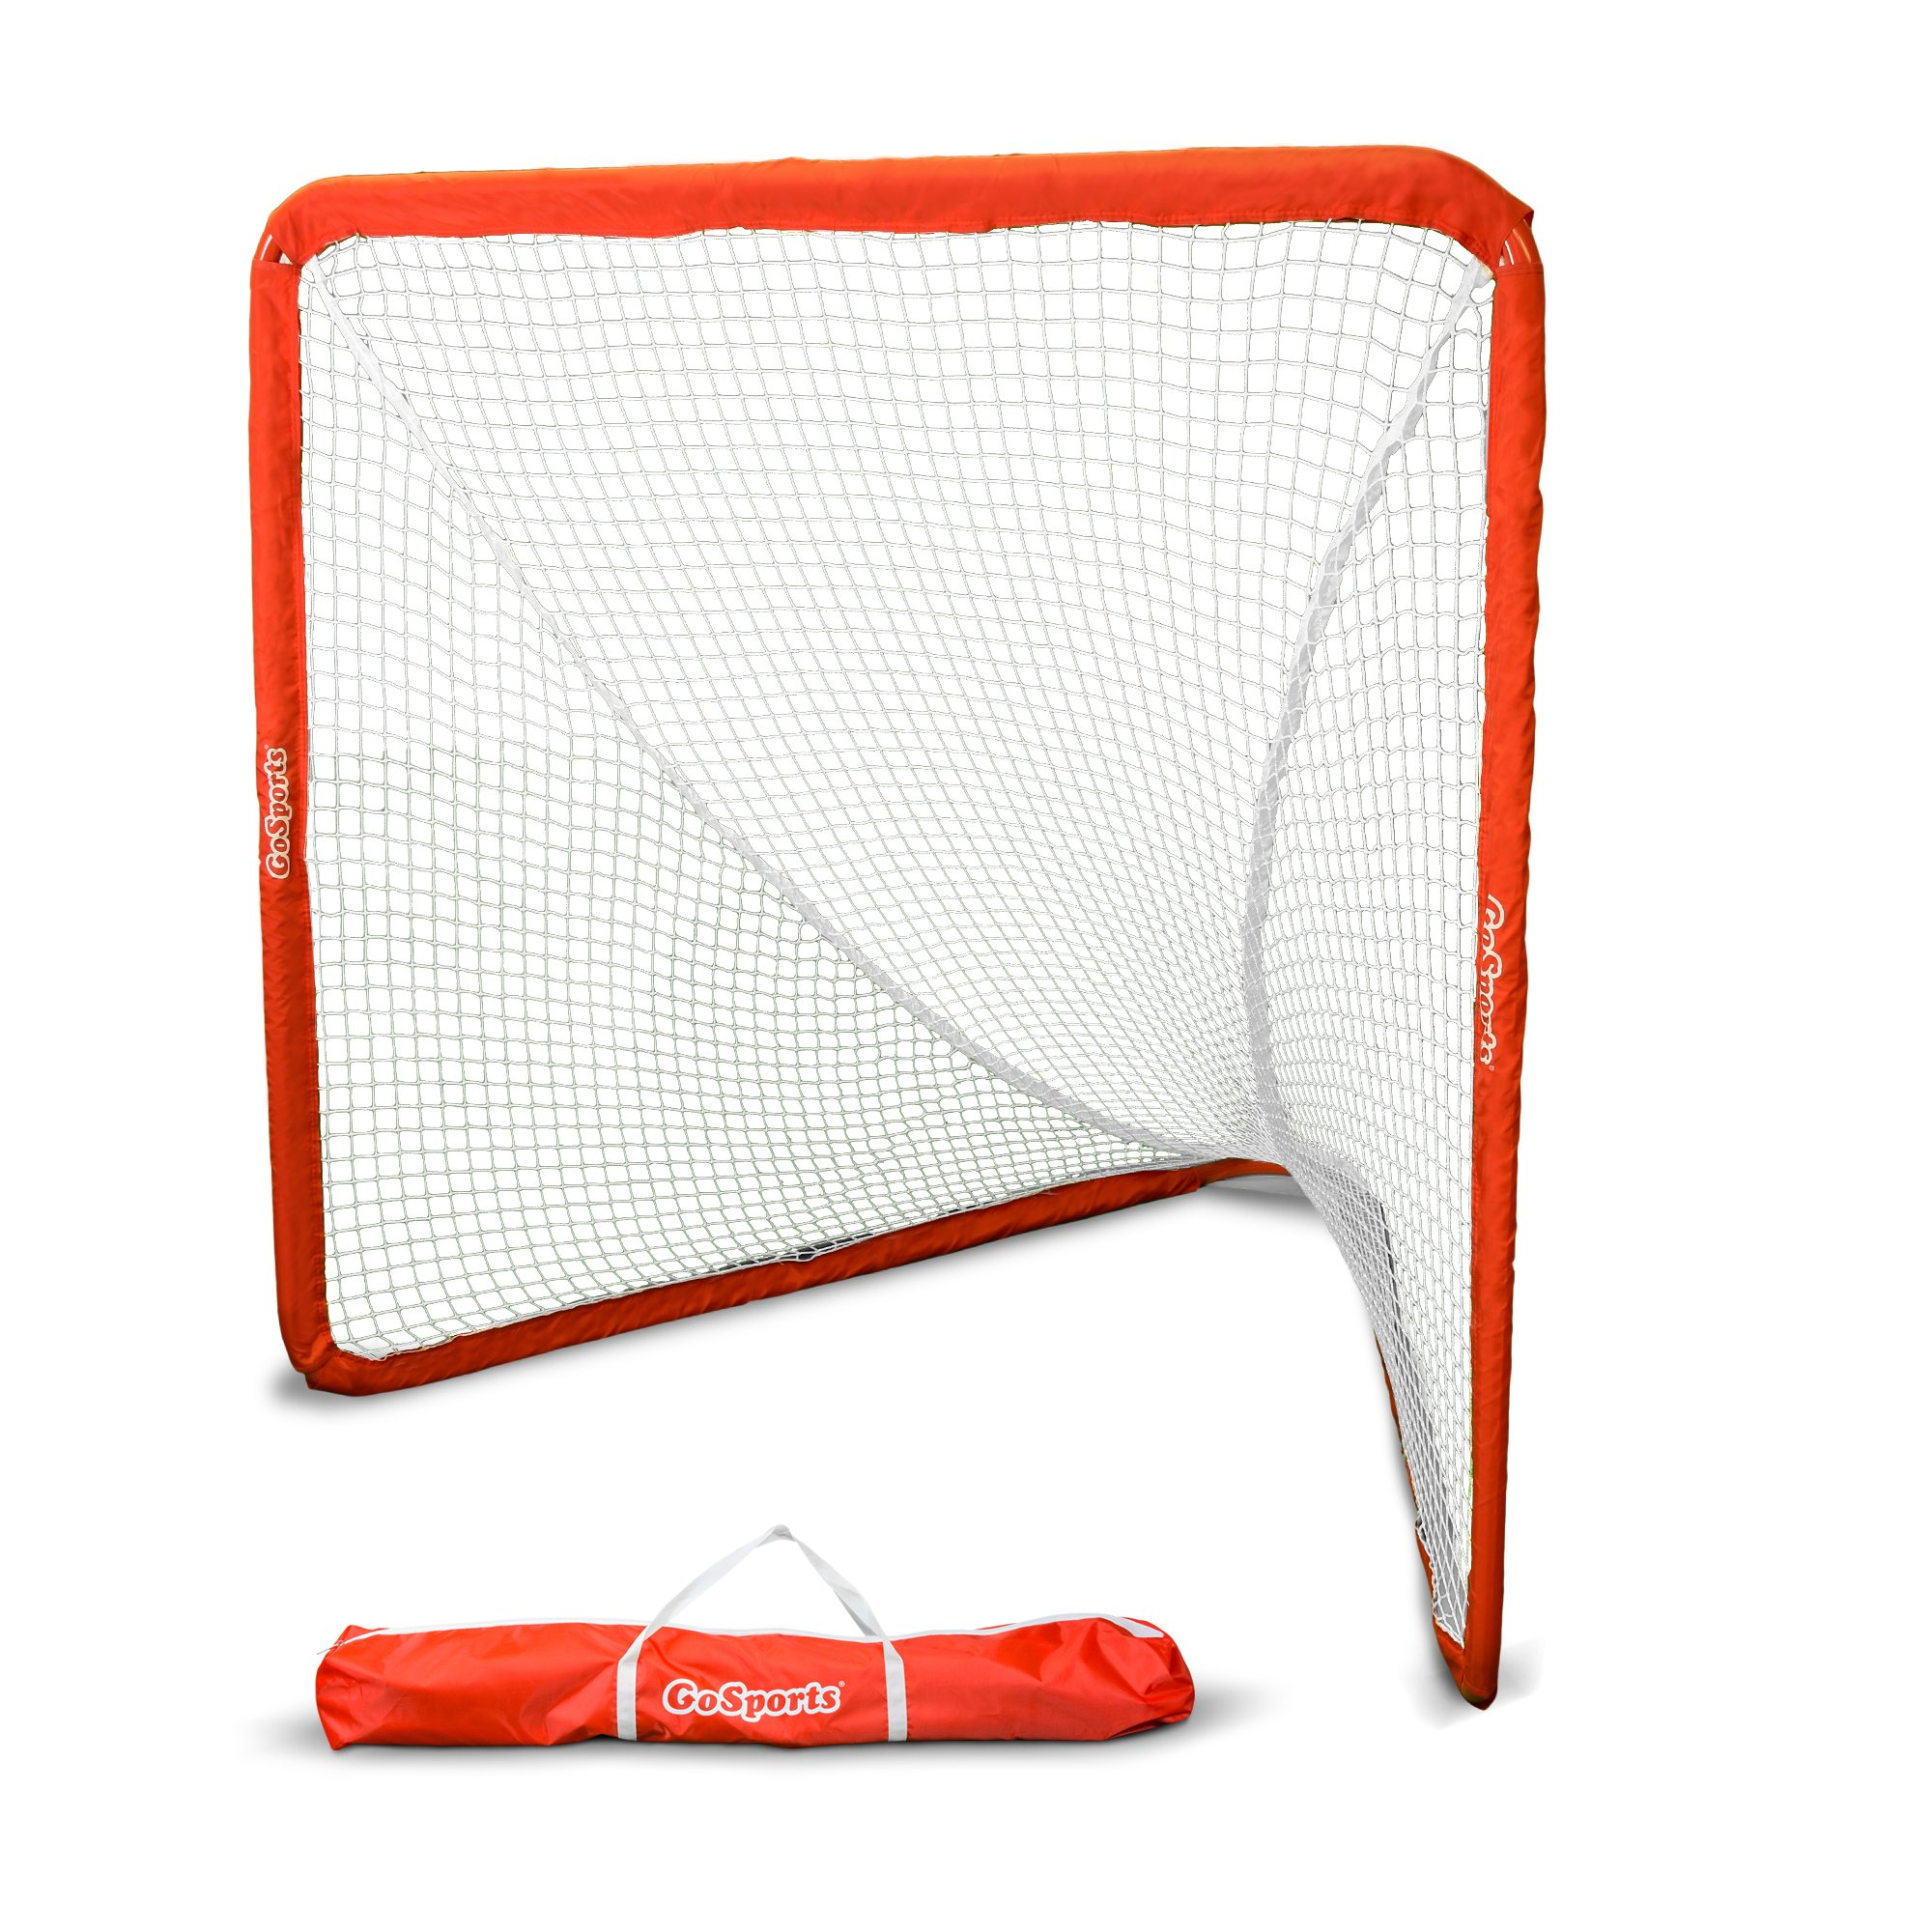 GoSports Regulation Lacrosse Goal with Steel Frame | Only Truly Portable Lacrosse Goal | Setup and Takedown in Minutes